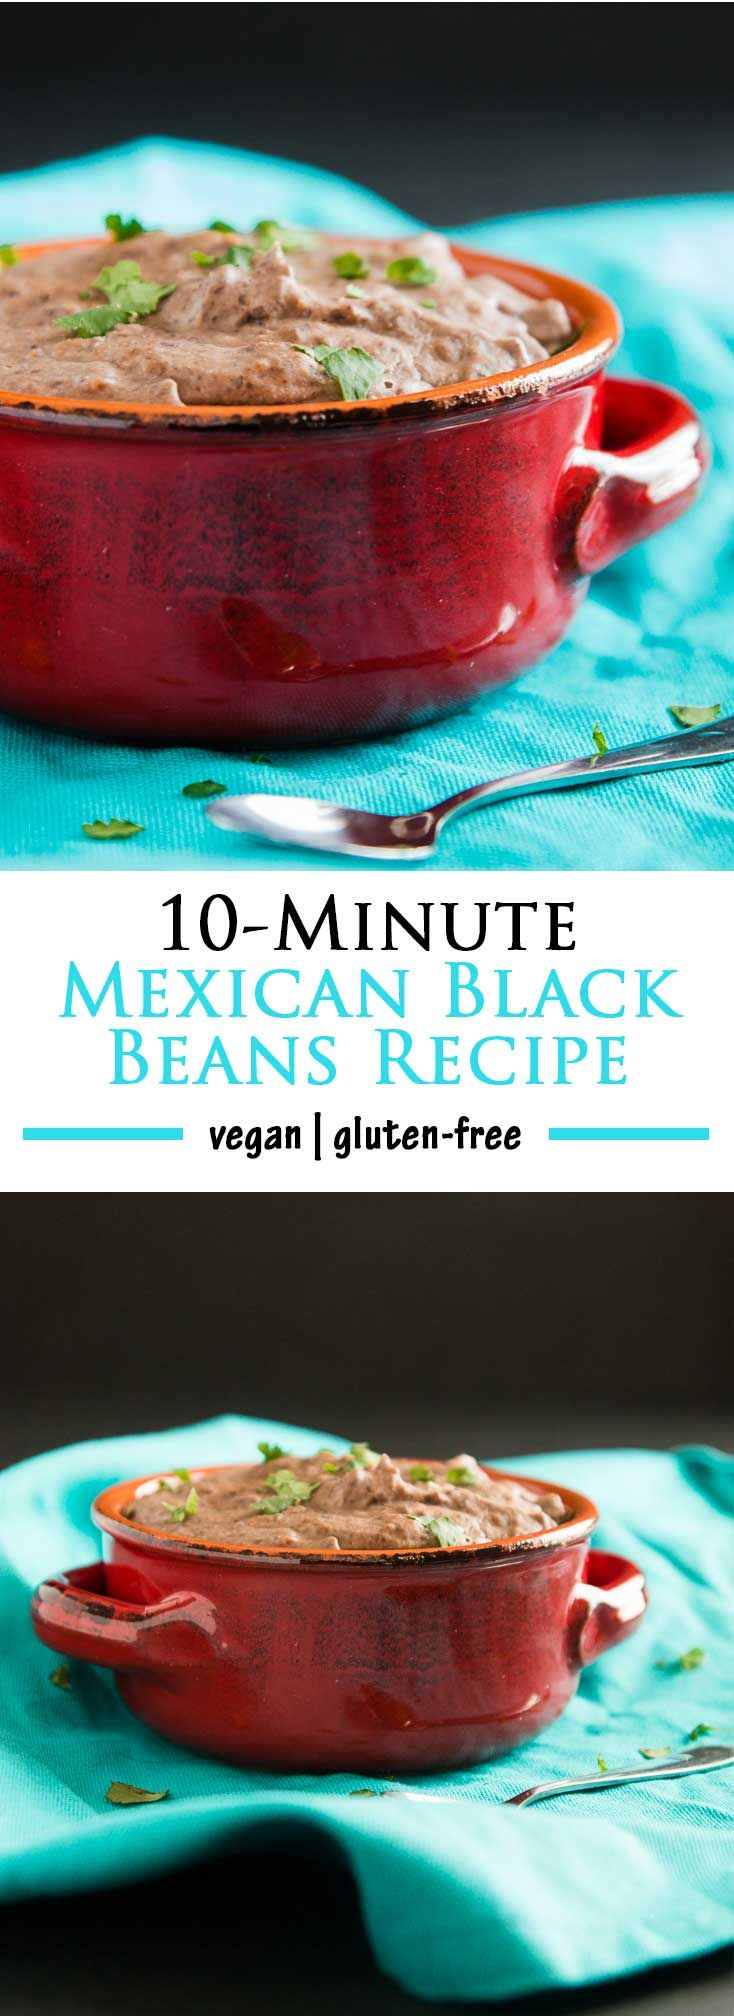 10-Minute Mexican Black Beans Recipe | Take your go-to meal up a notch by making these healthy vegan beans. No extra time, ALL the extra flavor and deliciousness | www.vegetariangastronomy.com | #vegan #glutenfree